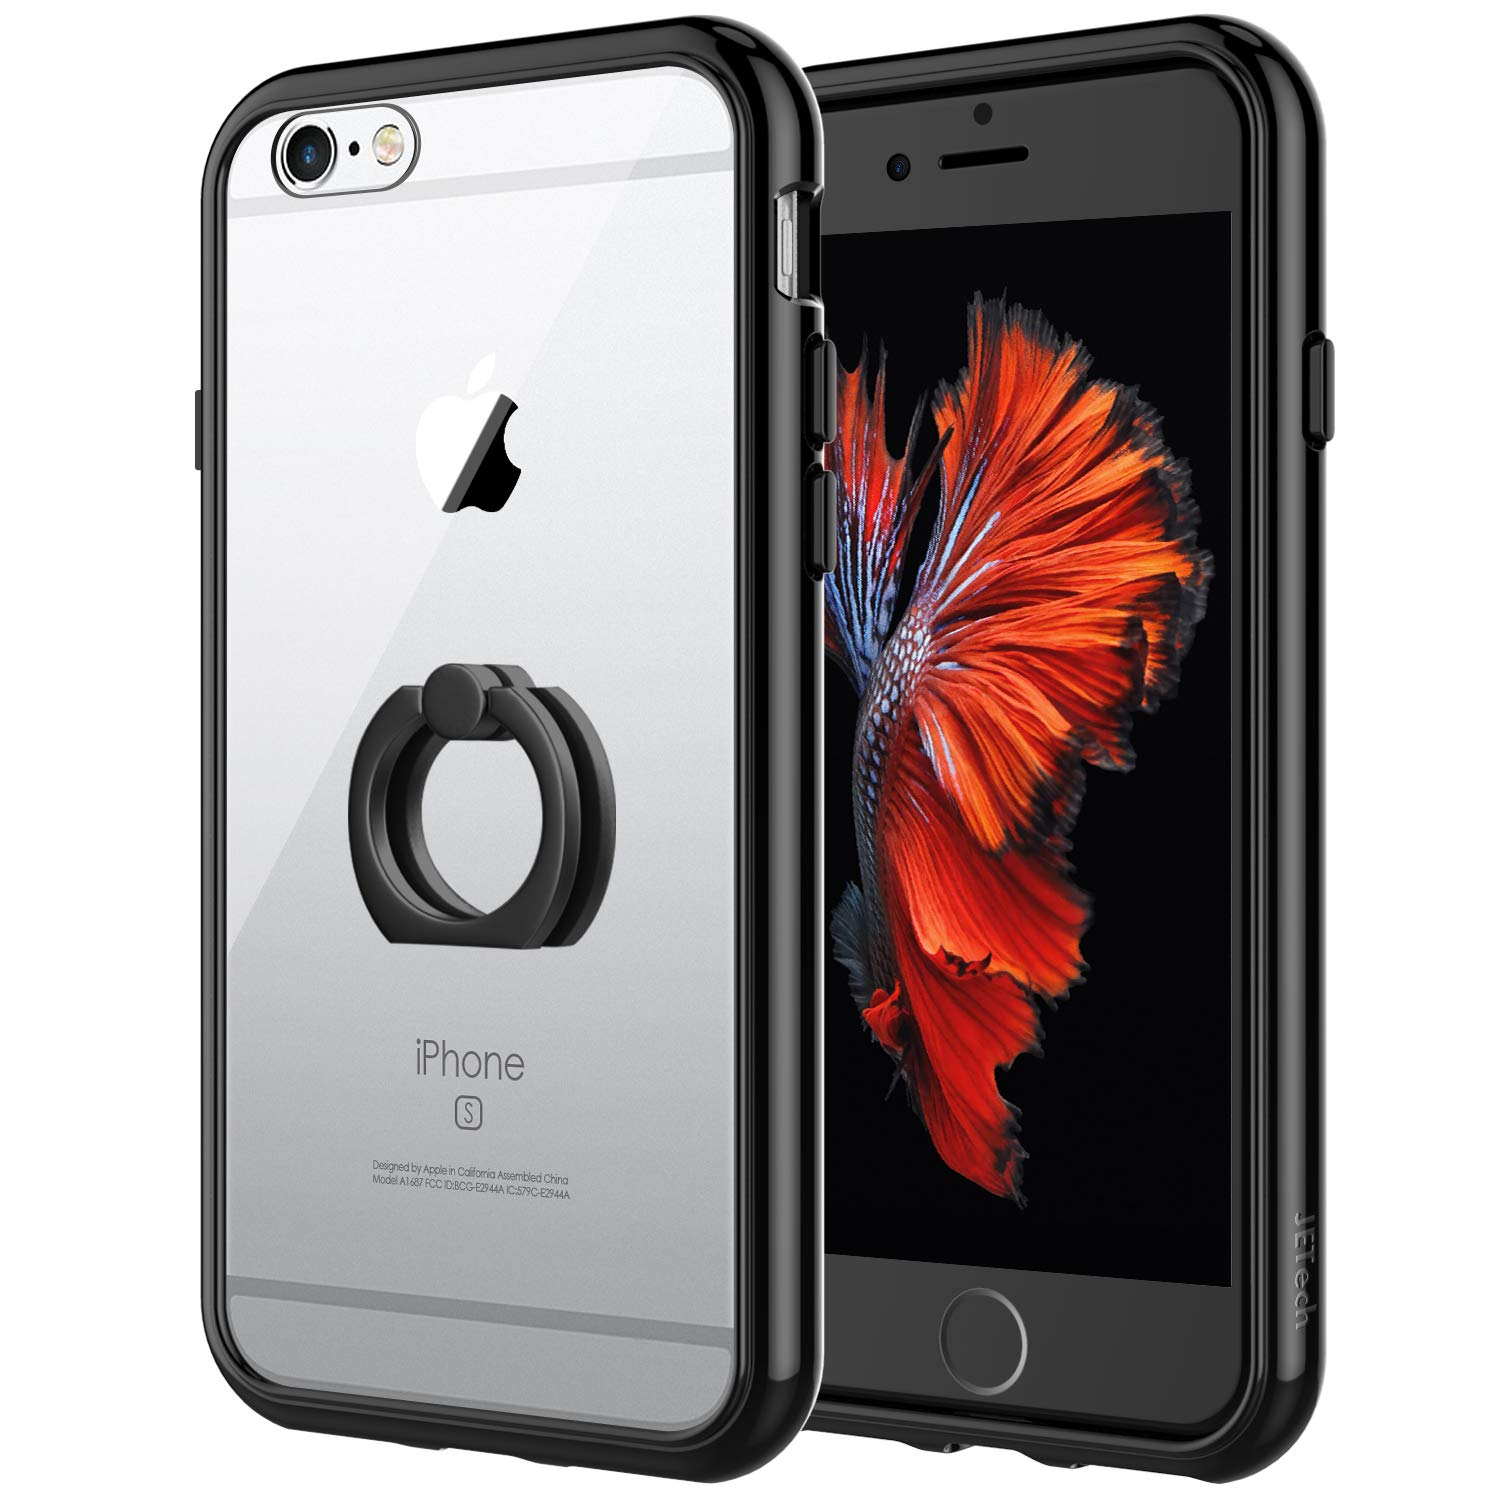 Jetech Case For Apple Iphone 6 And Iphone 6s Ring Holder Kickstand Shock Absorption Bumper Cover 4 7 Black Buy Online In Aruba At Aruba Desertcart Com Productid 51420786